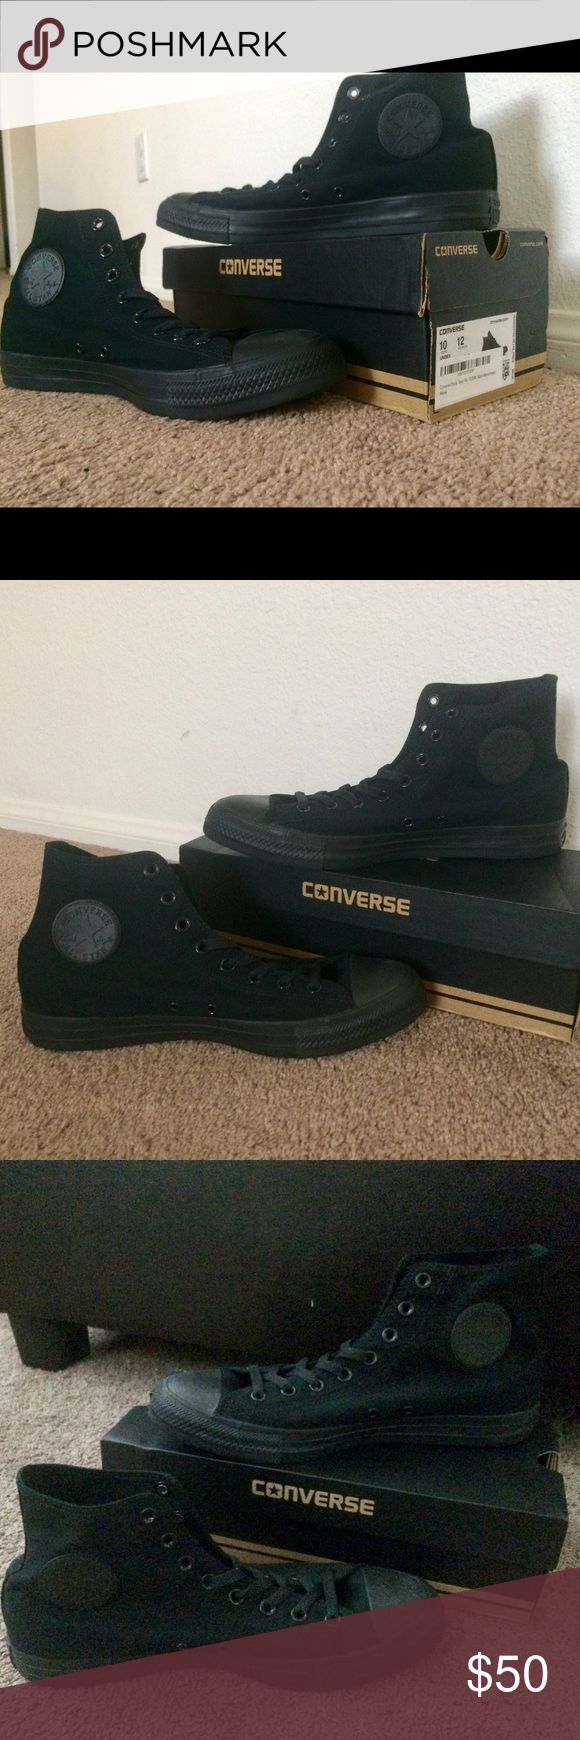 Brand New Men's Converse Size 10 With Box Authentic BRAND NEW Converse for men. Size 10. Black monochrome. Still in its original box.   **NOTE THAT THIS IS A BRAND NEW PAIR OF MEN'S SHOES, NEVER BEEN WORN, WITHOUT TAGS, COMES WITH ITS ORIGINAL BOX. Converse Shoes Sneakers